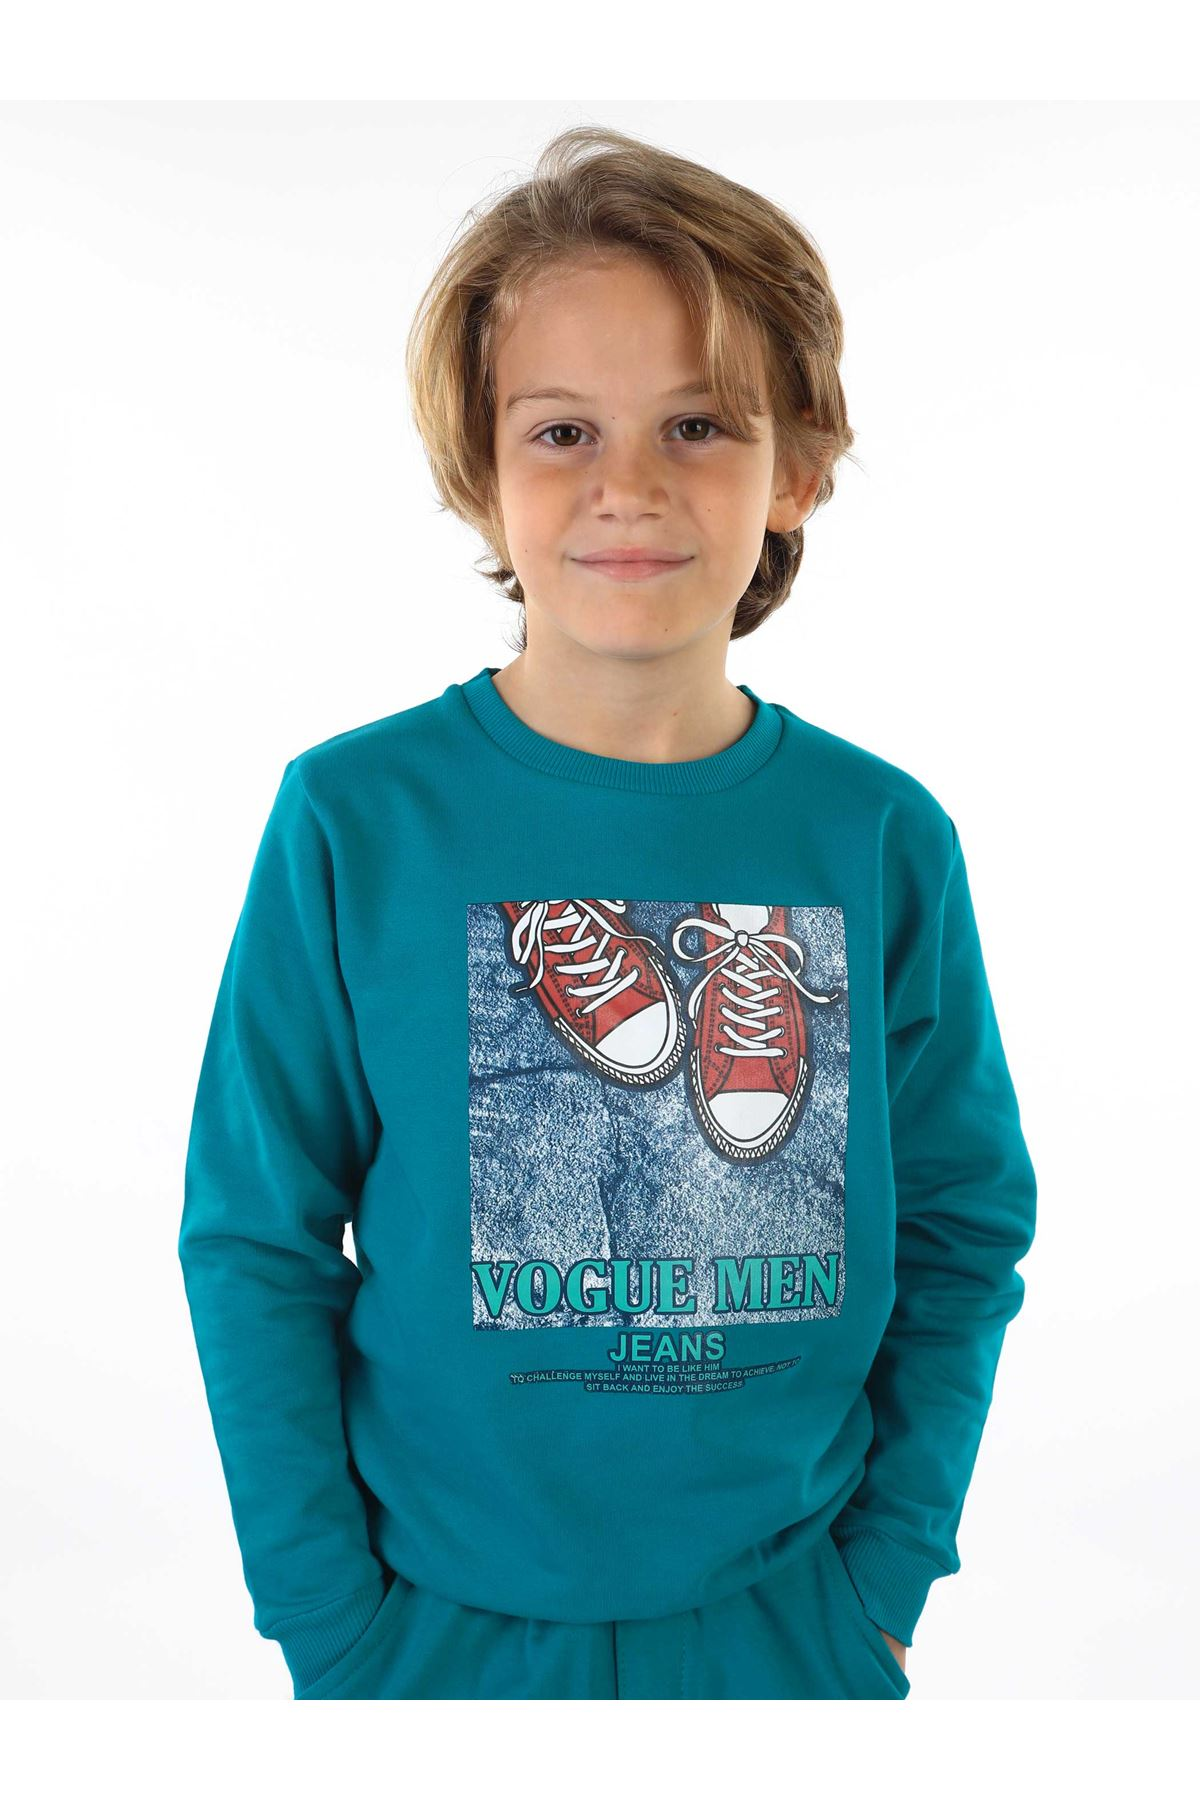 Oil Green Seasonal Male Child Sweatshirt